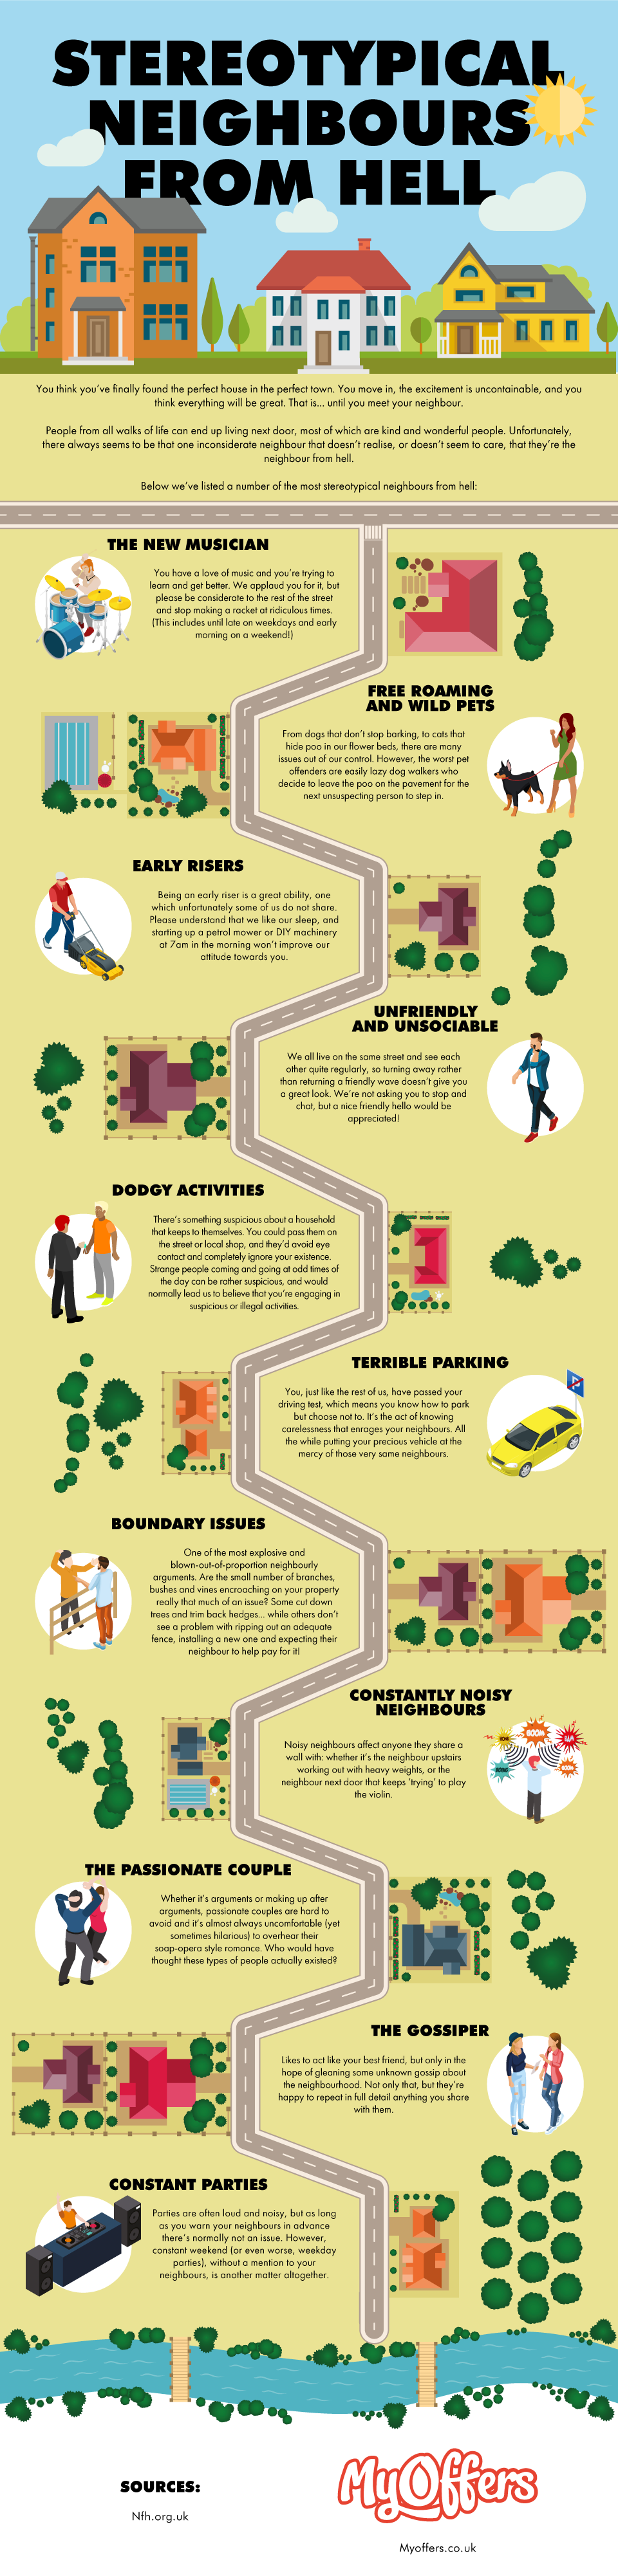 Stereotypical neighbors from hell #infographic